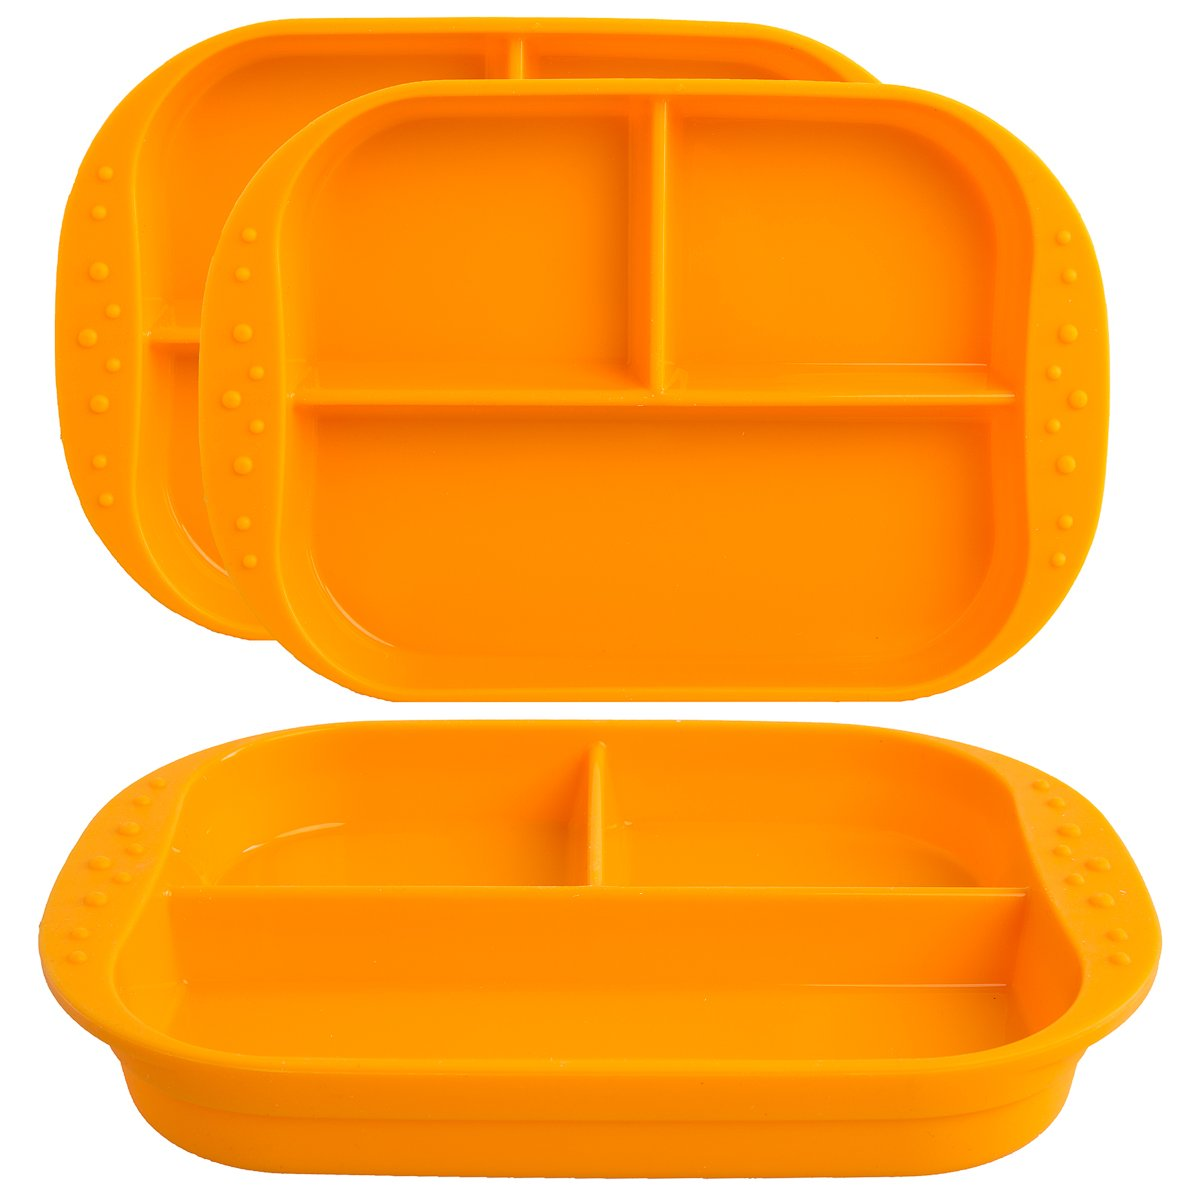 Kinderville (3 Pack) Silicone Kids Plates With Dividers Microwave Safe BPA Free Toddler Divided Plates